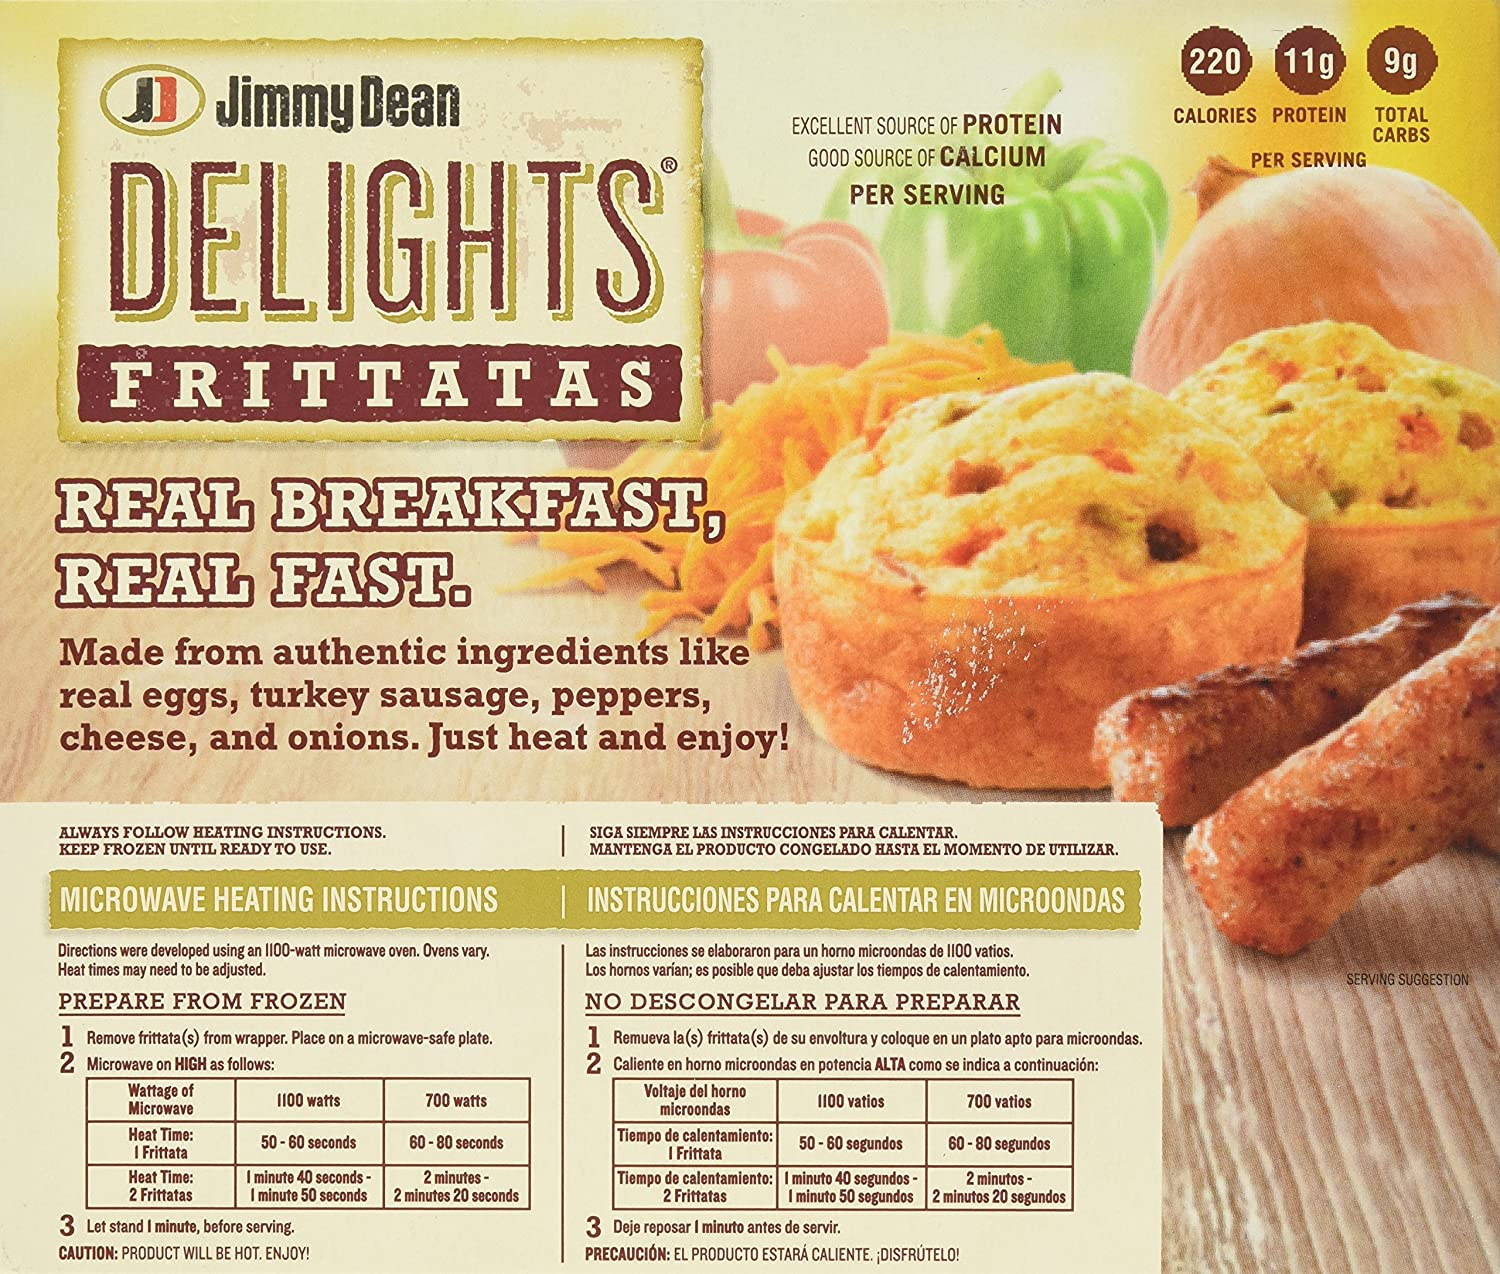 Jimmy Dean, Turkey Vegetables Delight Frittata, 6 ct (frozen): Amazon.com: Grocery & Gourmet Food